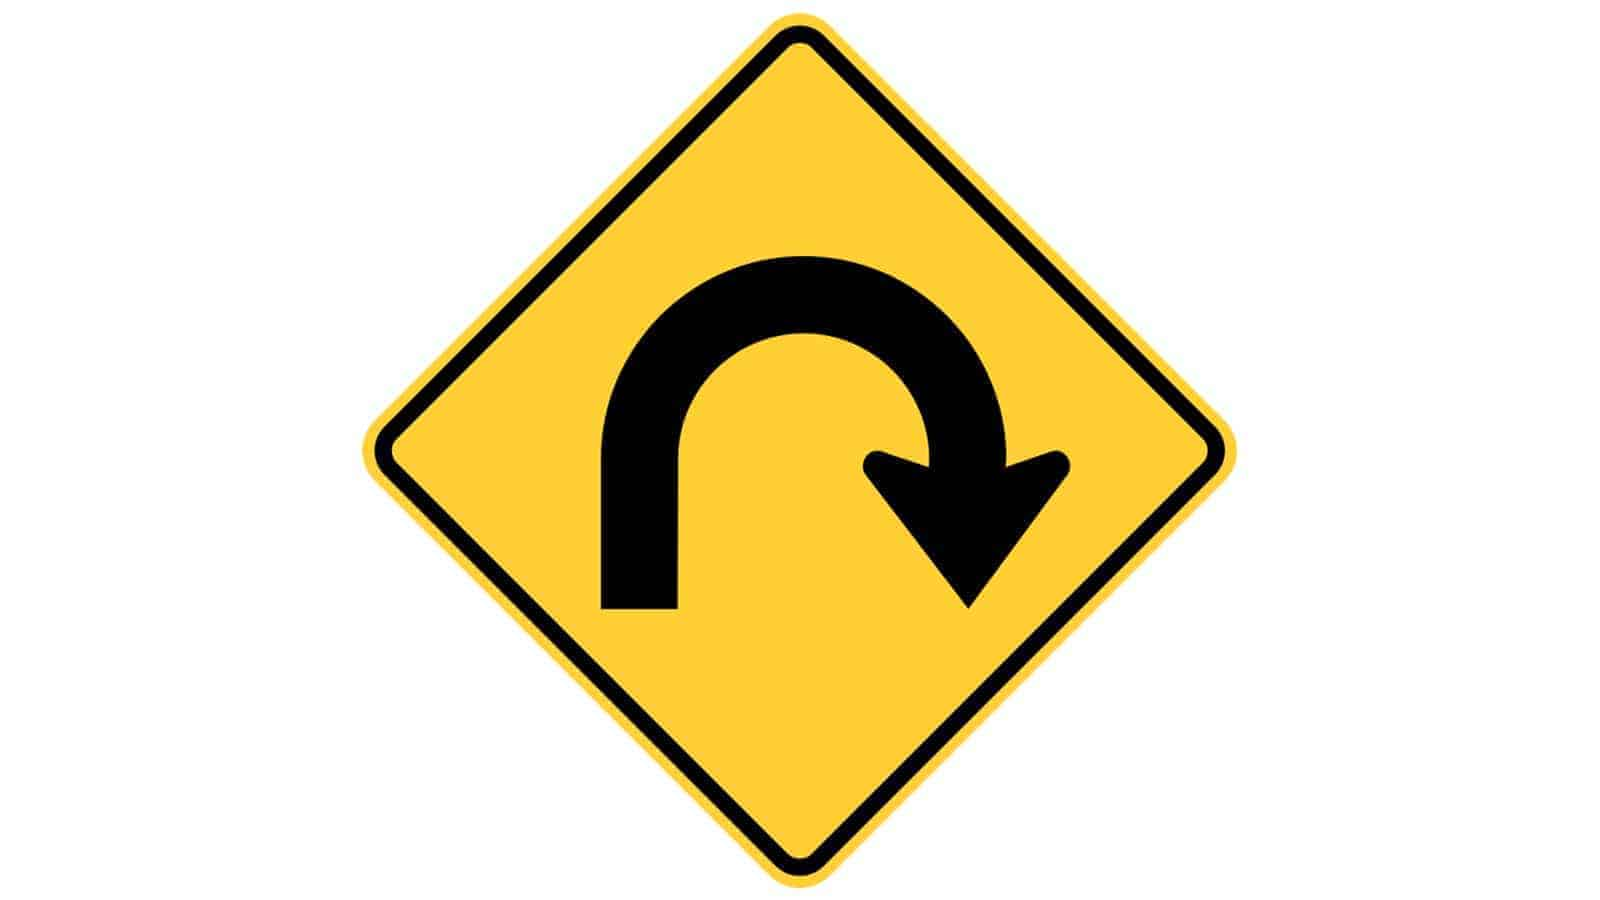 Warning sign Hairpin Curve